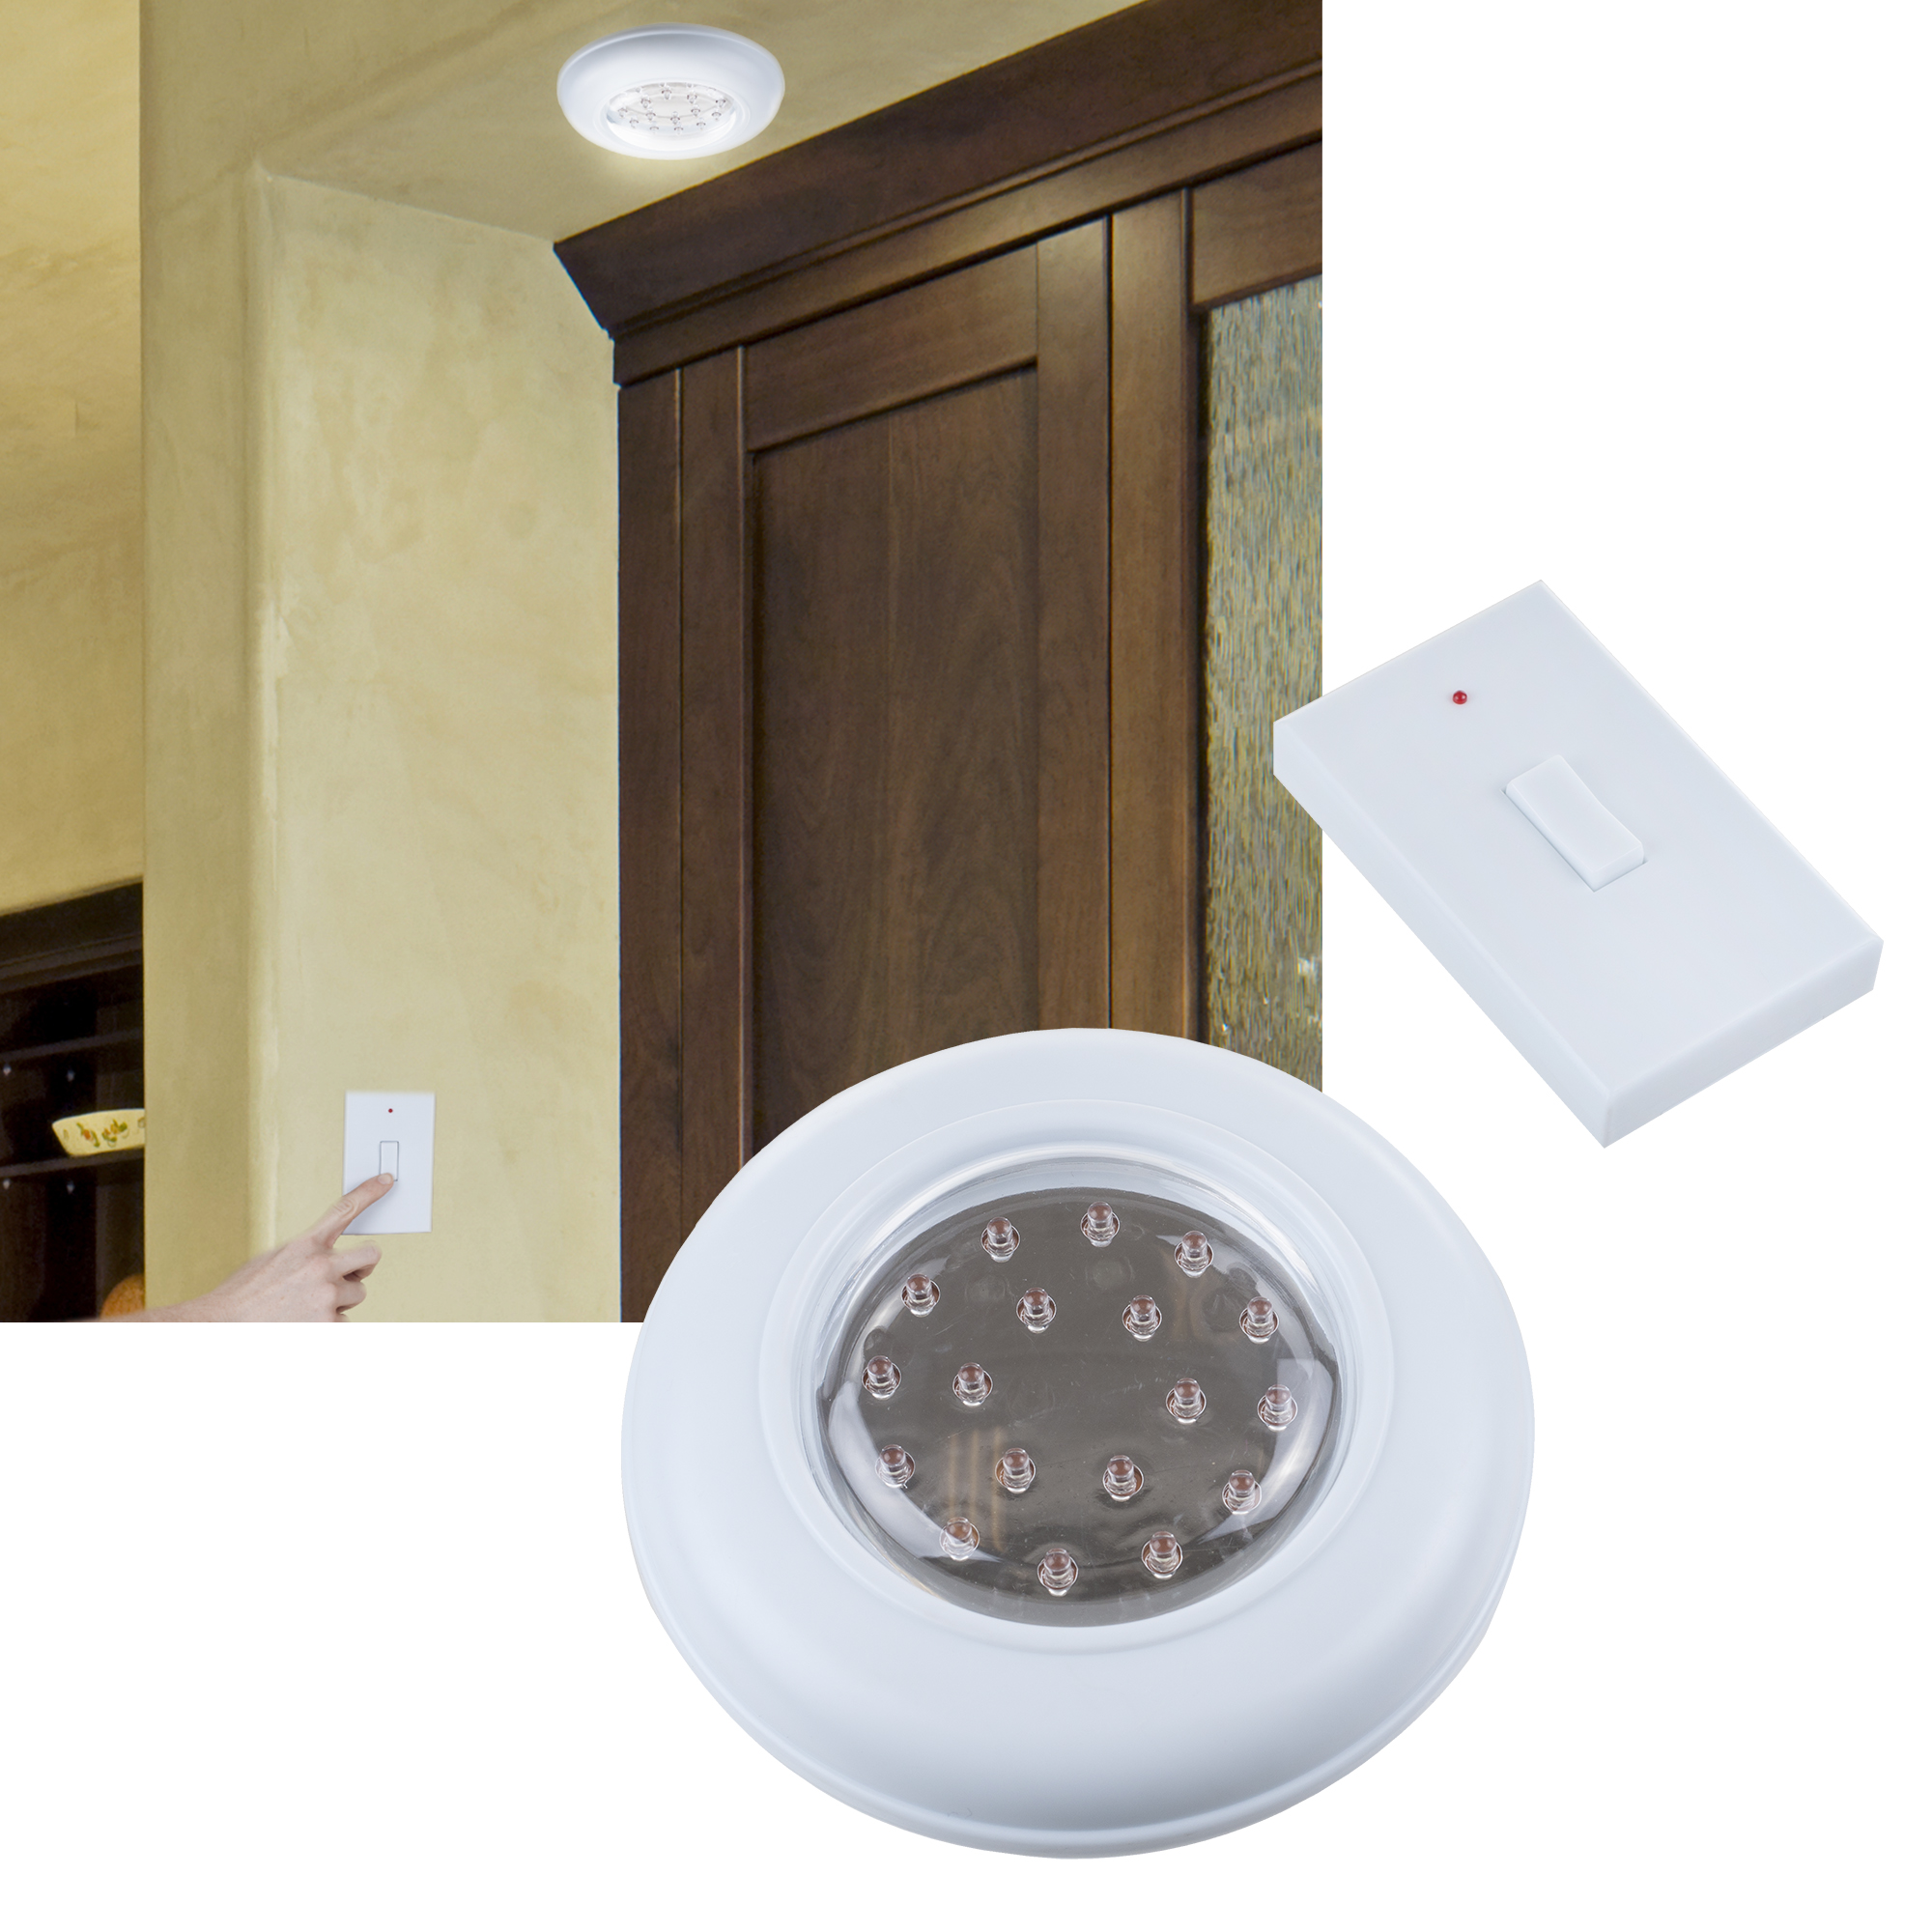 Cordless Ceilingwall Light With Remote Control Light Switch Tanga